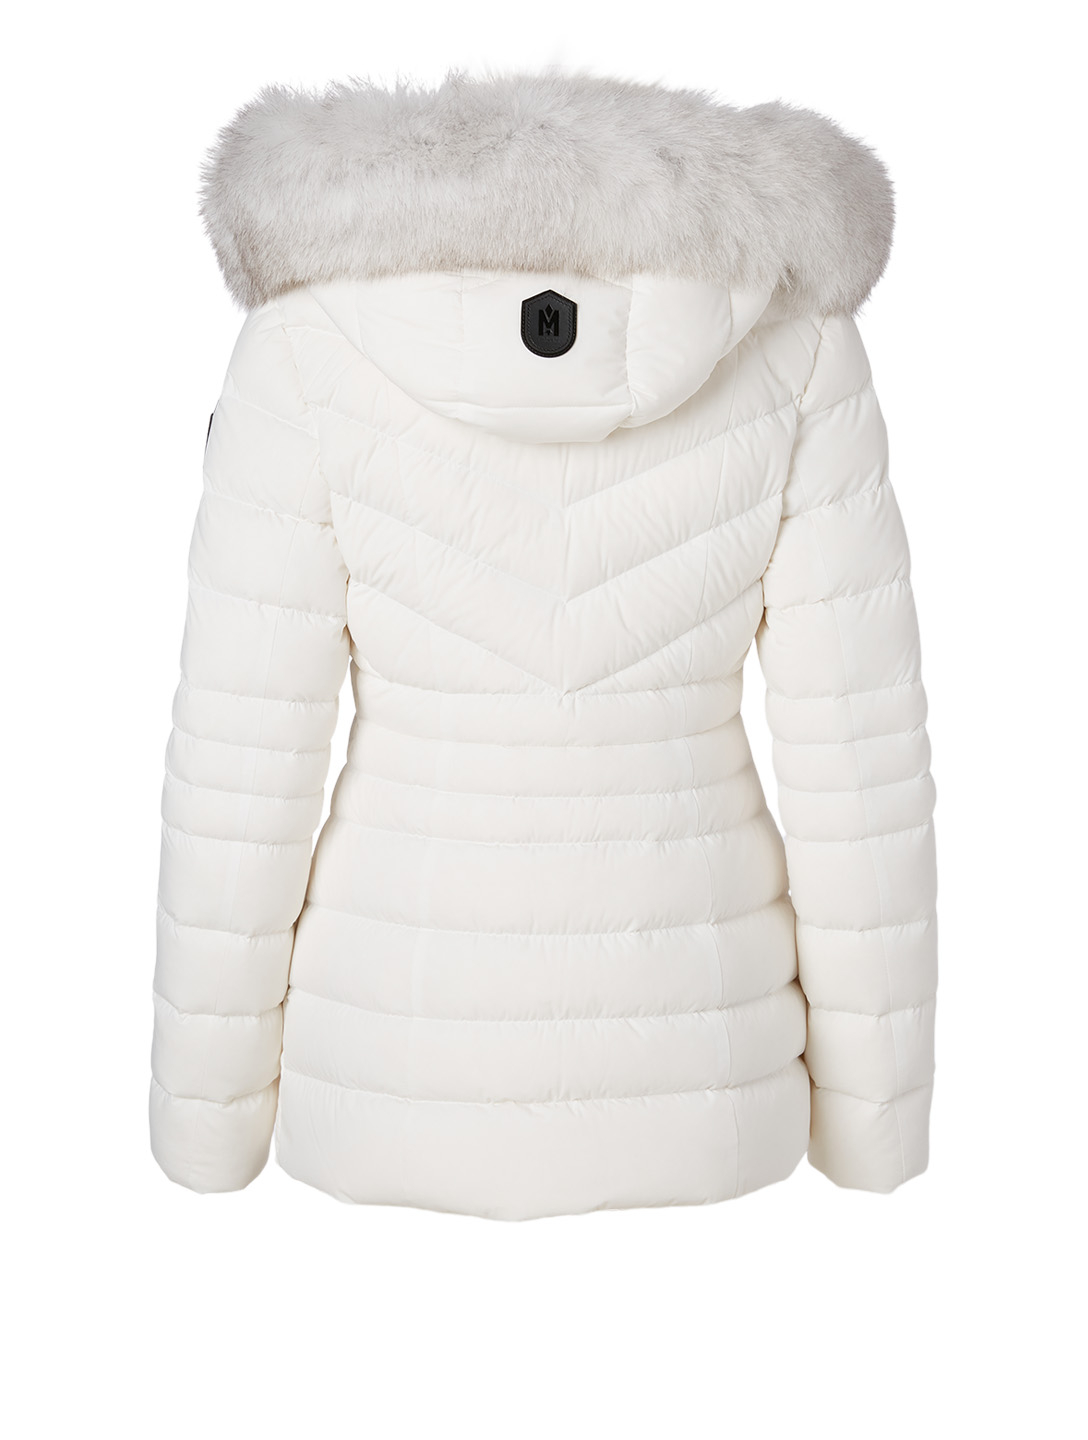 MACKAGE Patsy Quilted Down Coat With Fur Collar Women's White